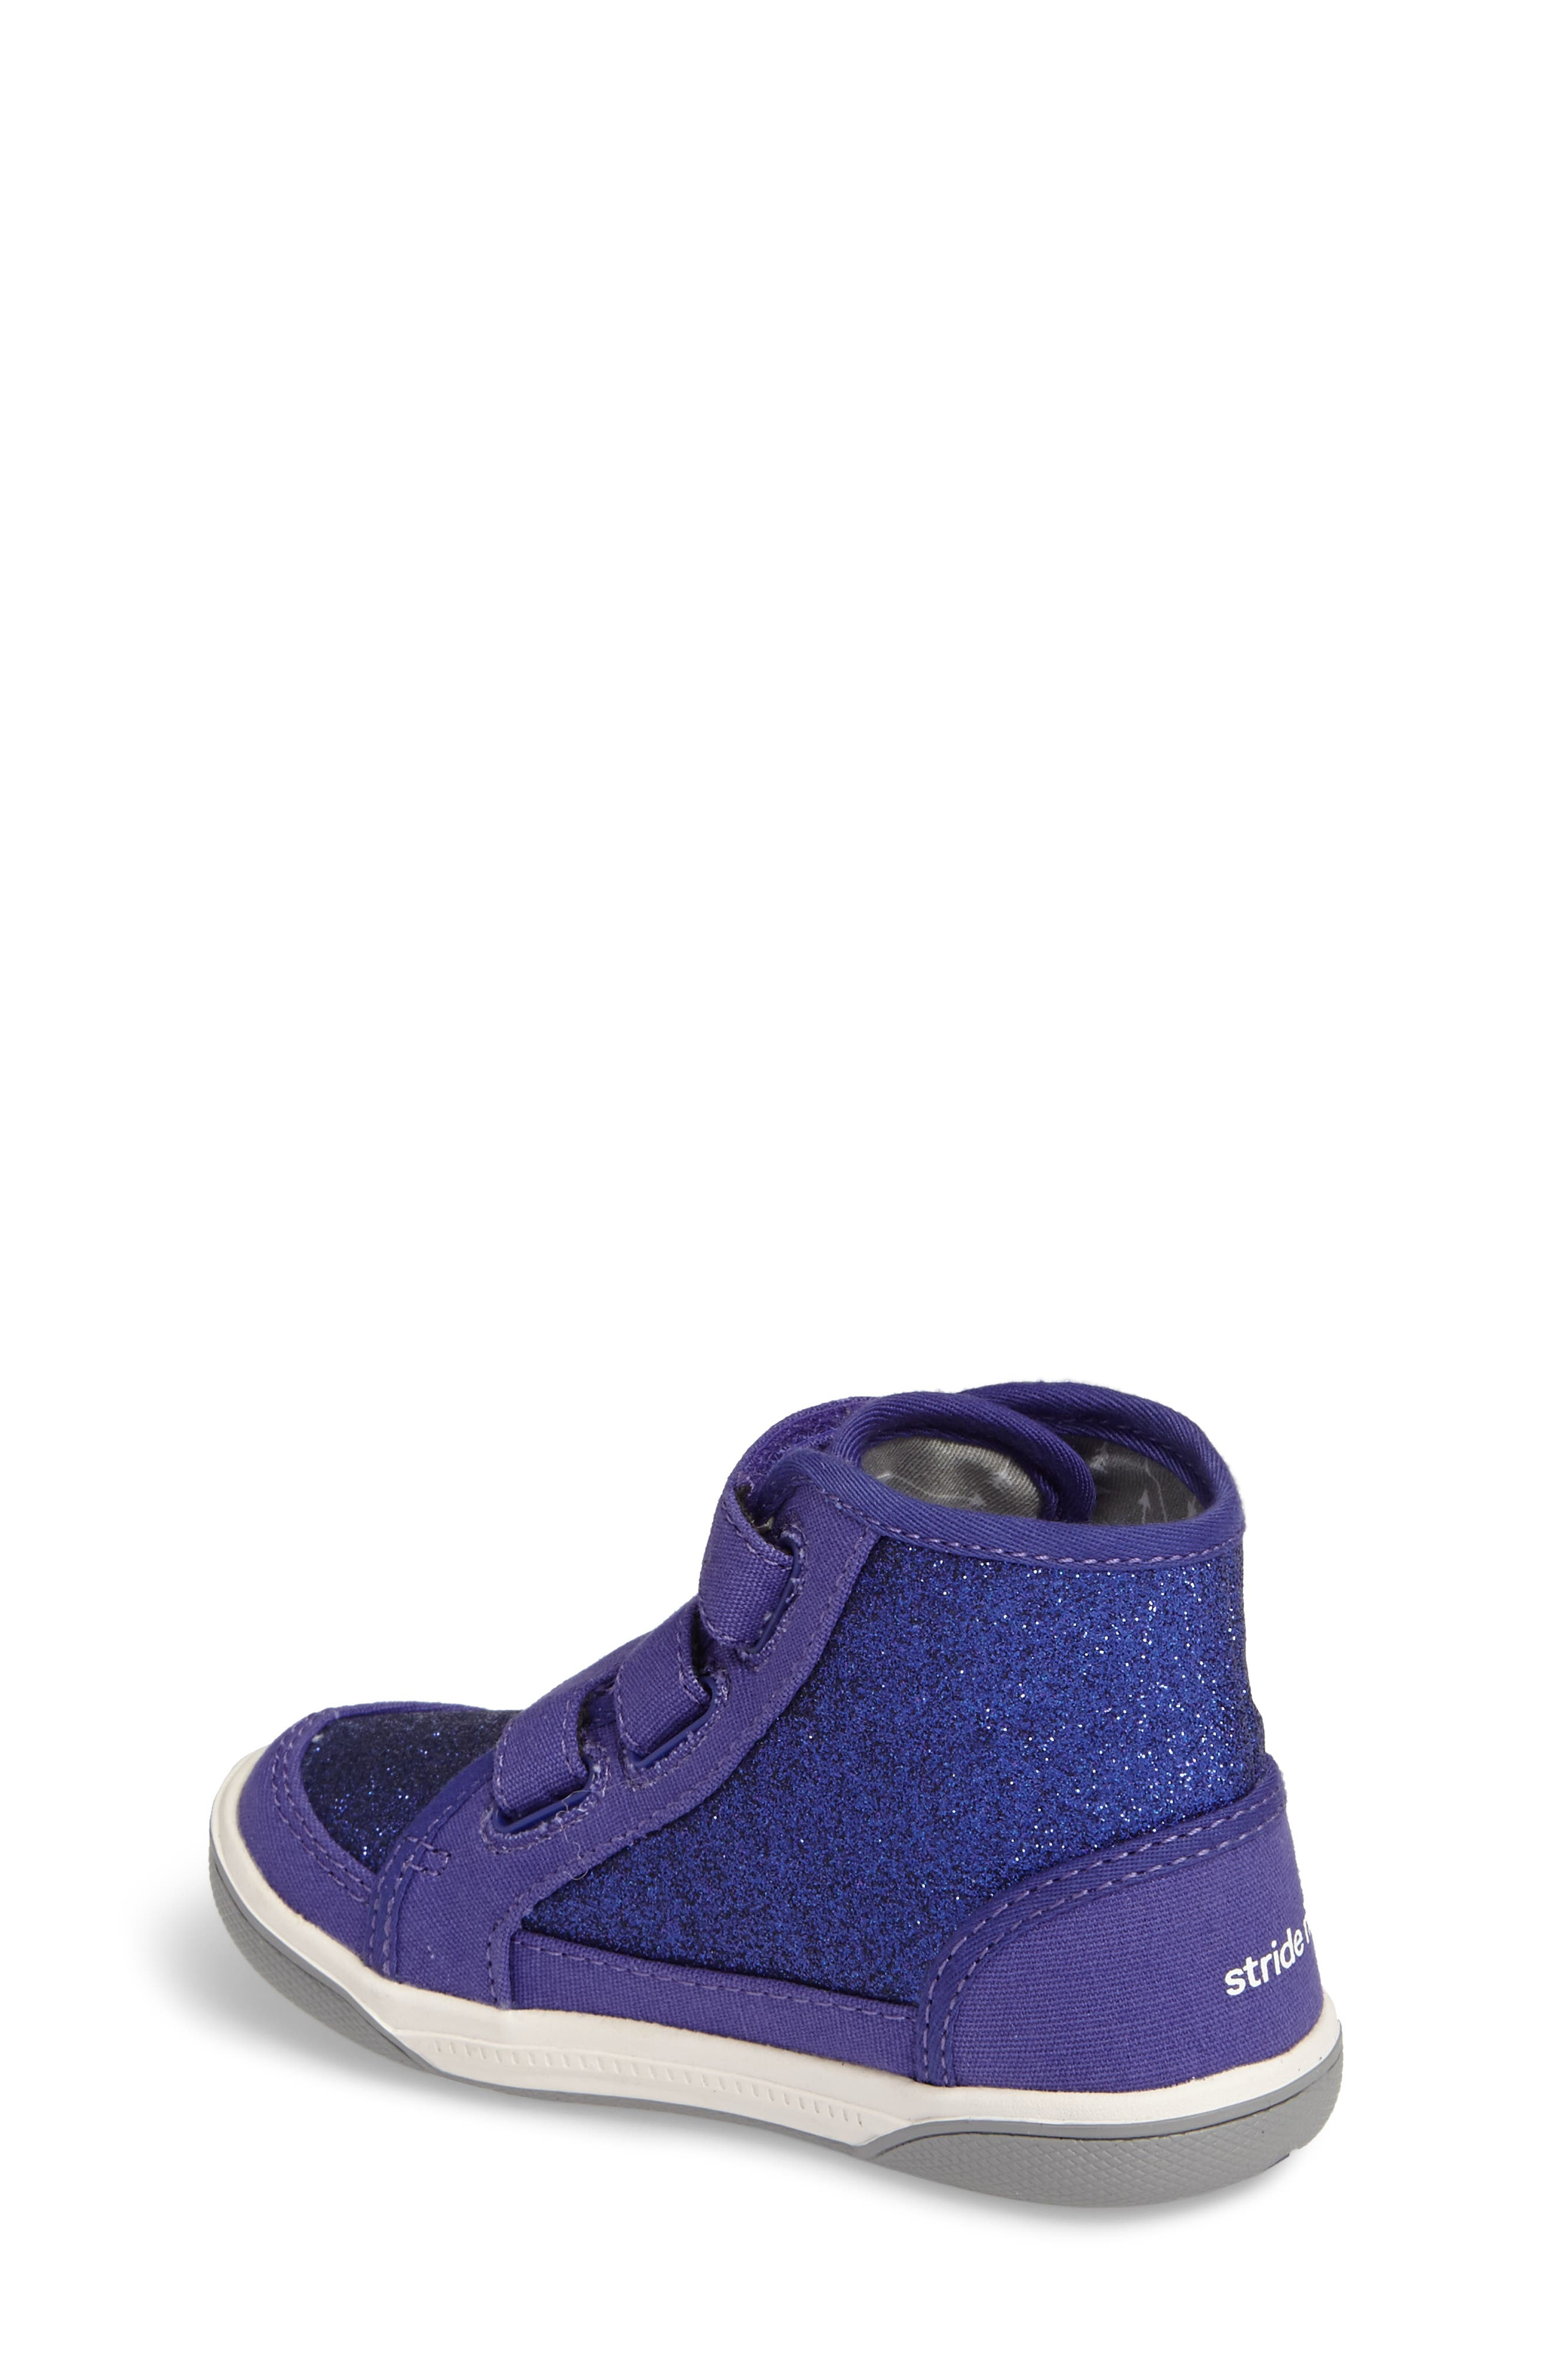 Ellis Glitter High Top Sneaker,                             Alternate thumbnail 2, color,                             Purple